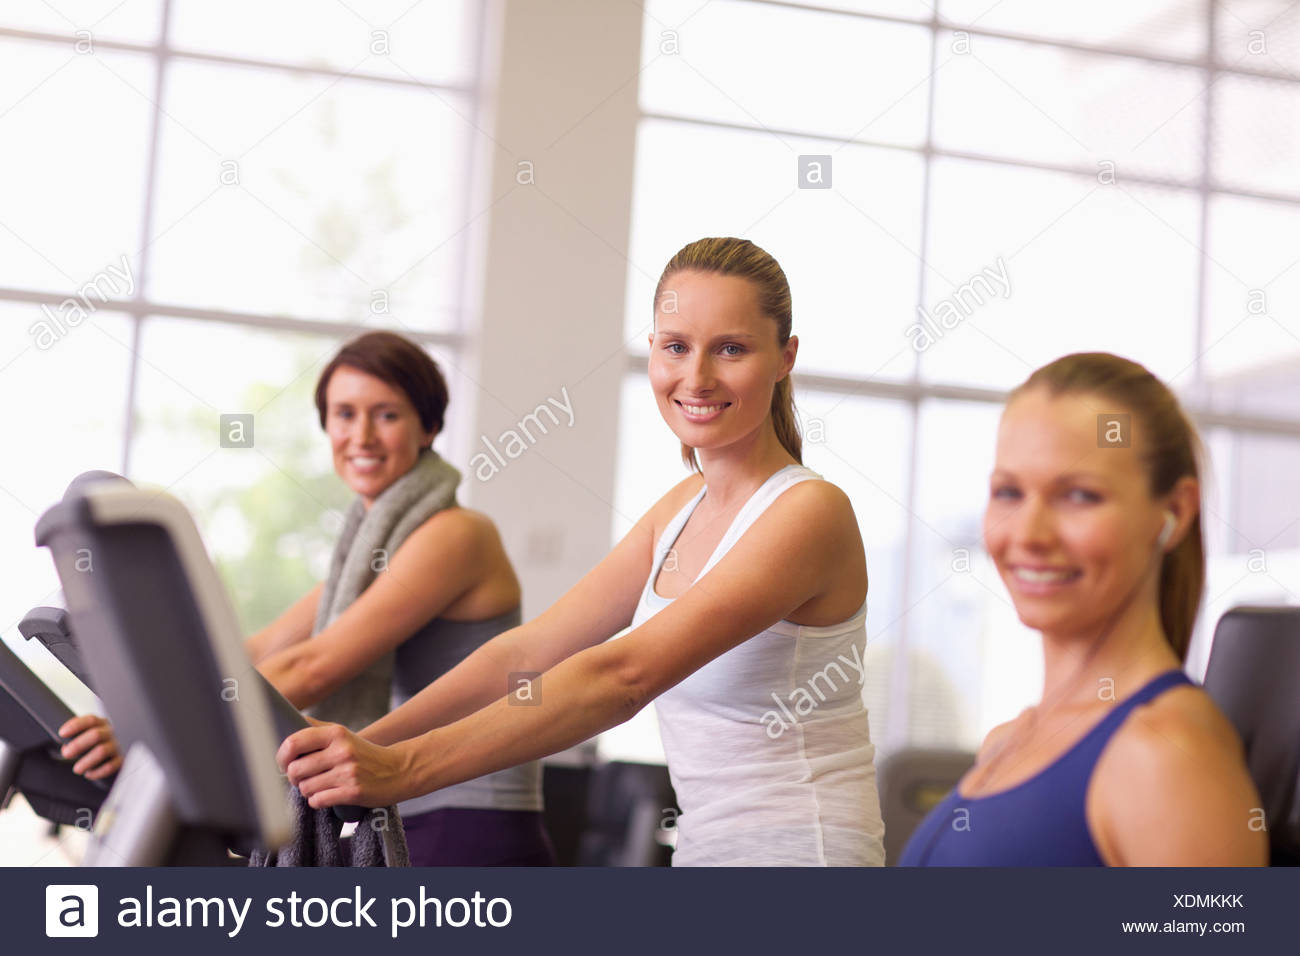 Portrait of smiling woman on exercise bike in gymnasium - Stock Image